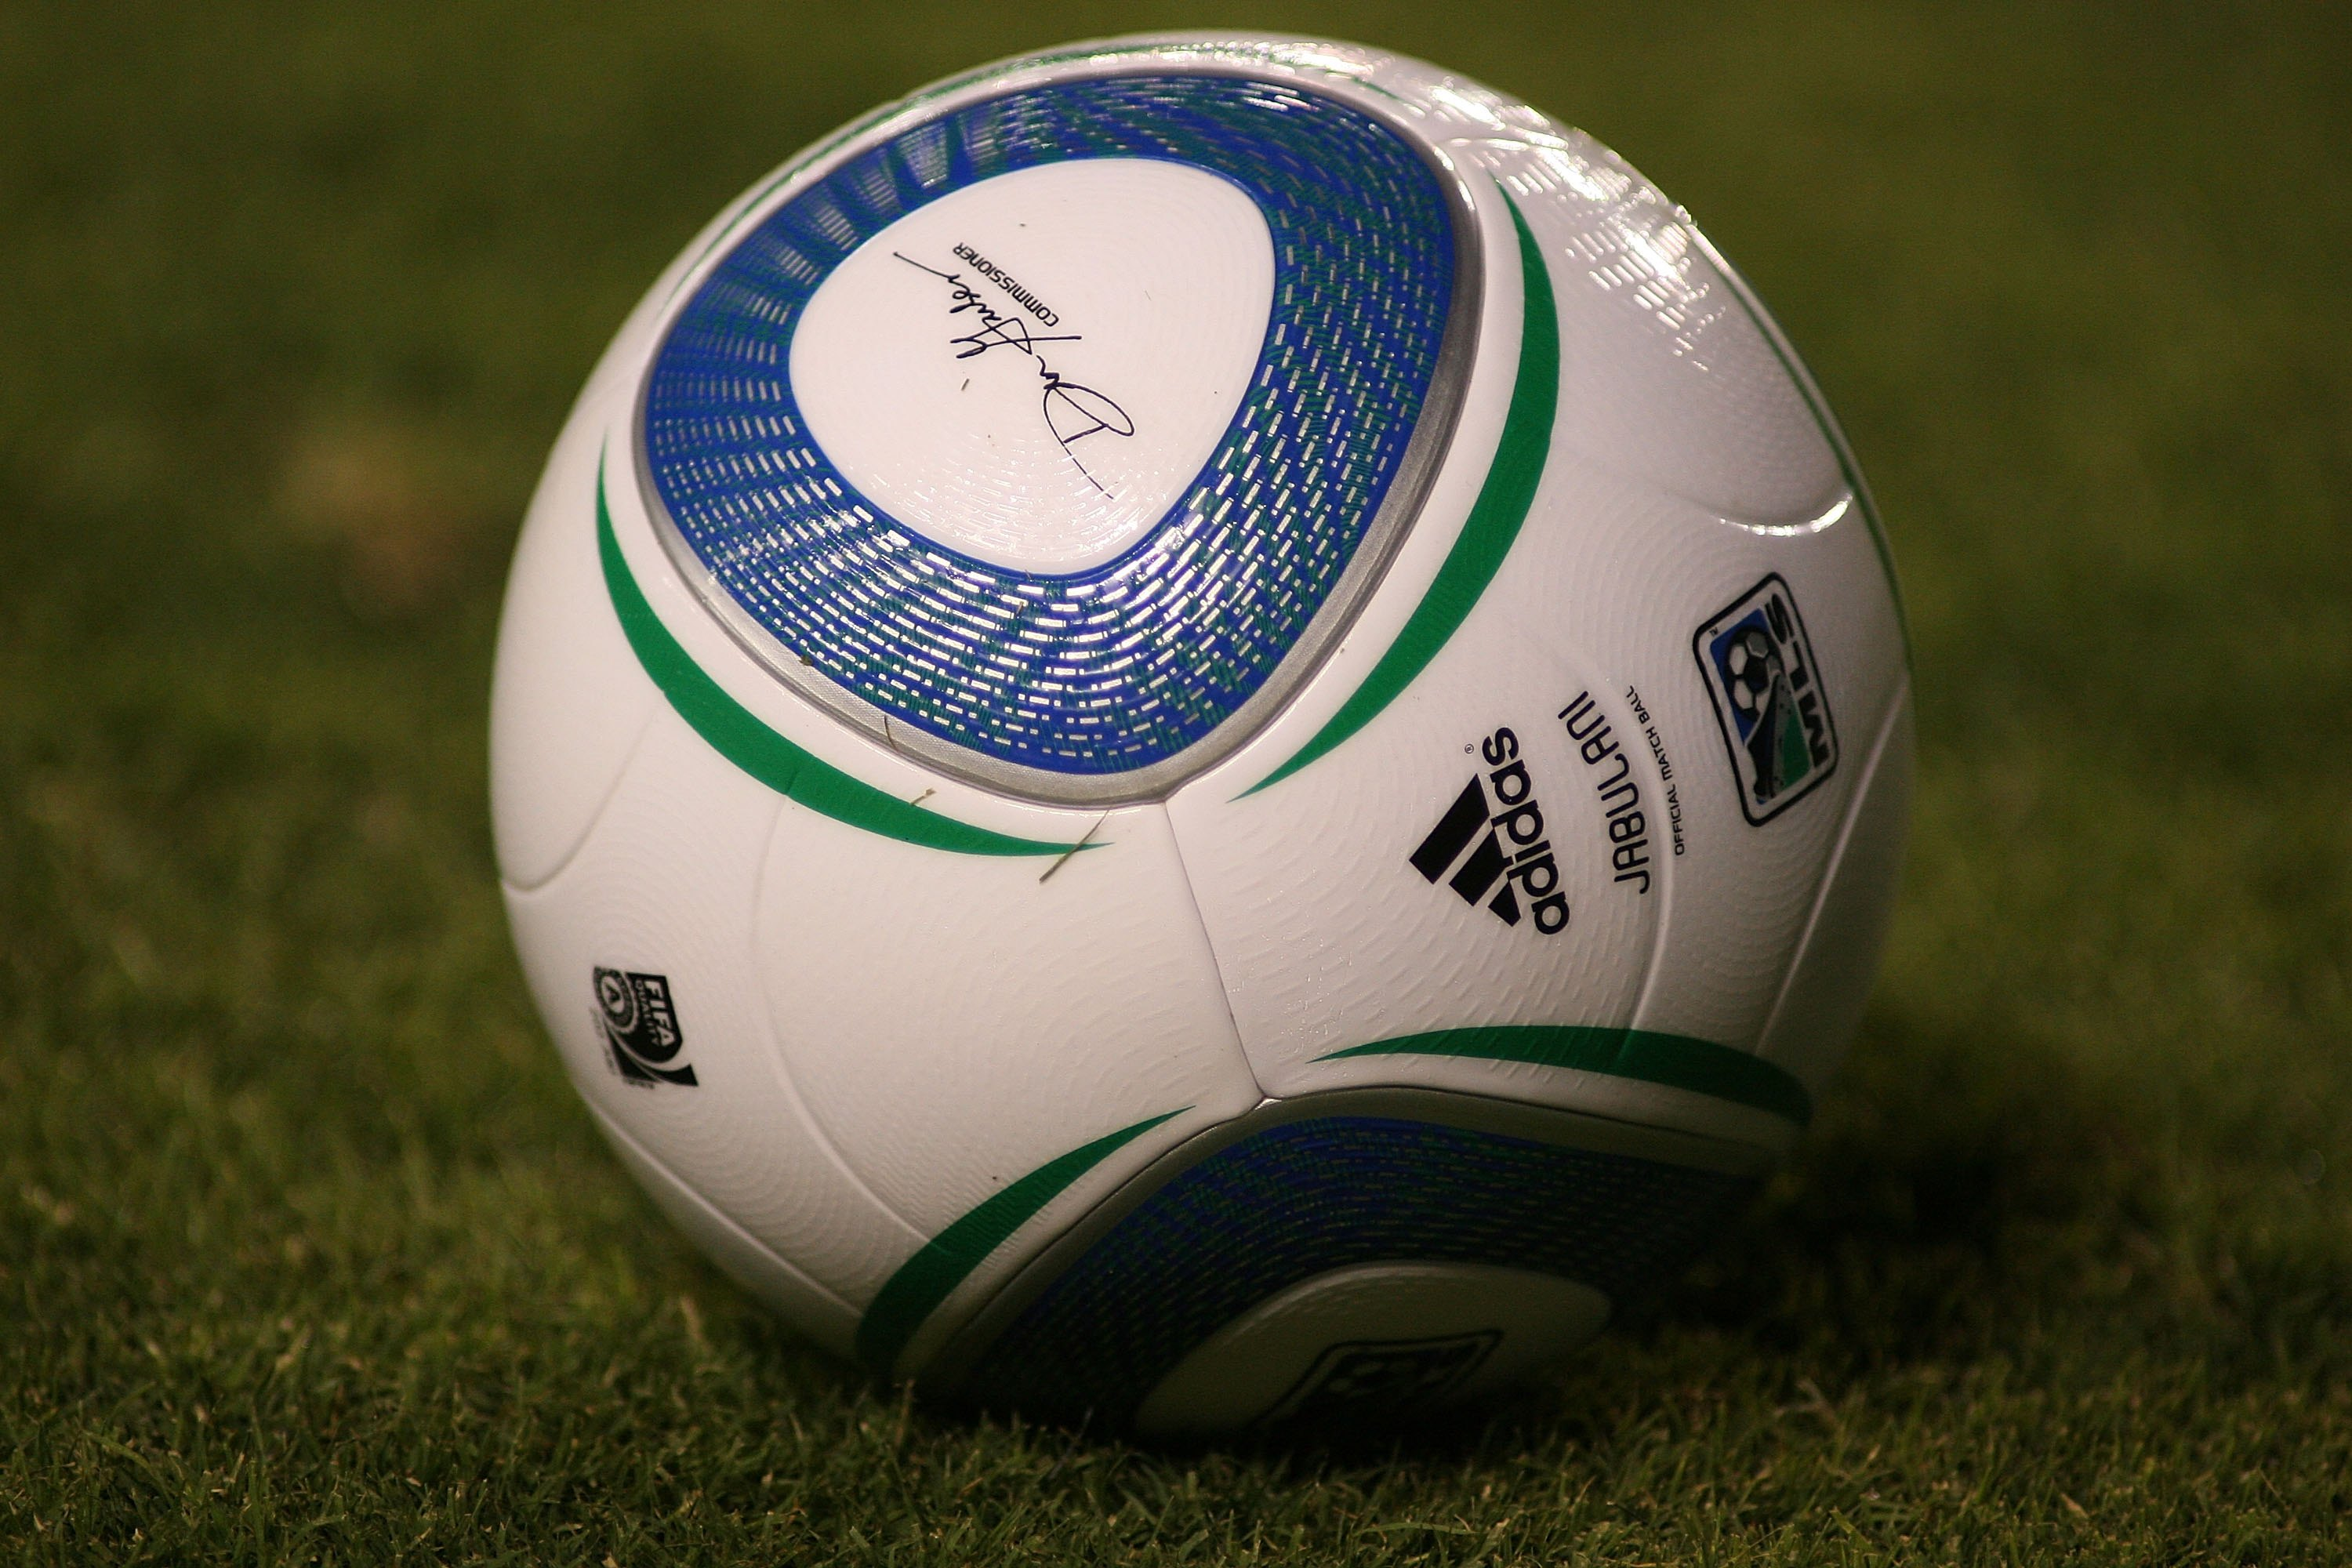 CARSON, CA - AUGUST 29:  Detail view of an Adidas Jabulani game ball on the field during the MLS match between D.C. United and Chivas USA on August 29, 2010 at the Home Depot Center in Carson, California. Chivas USA defeated D.C. United 1-0.  (Photo by Je